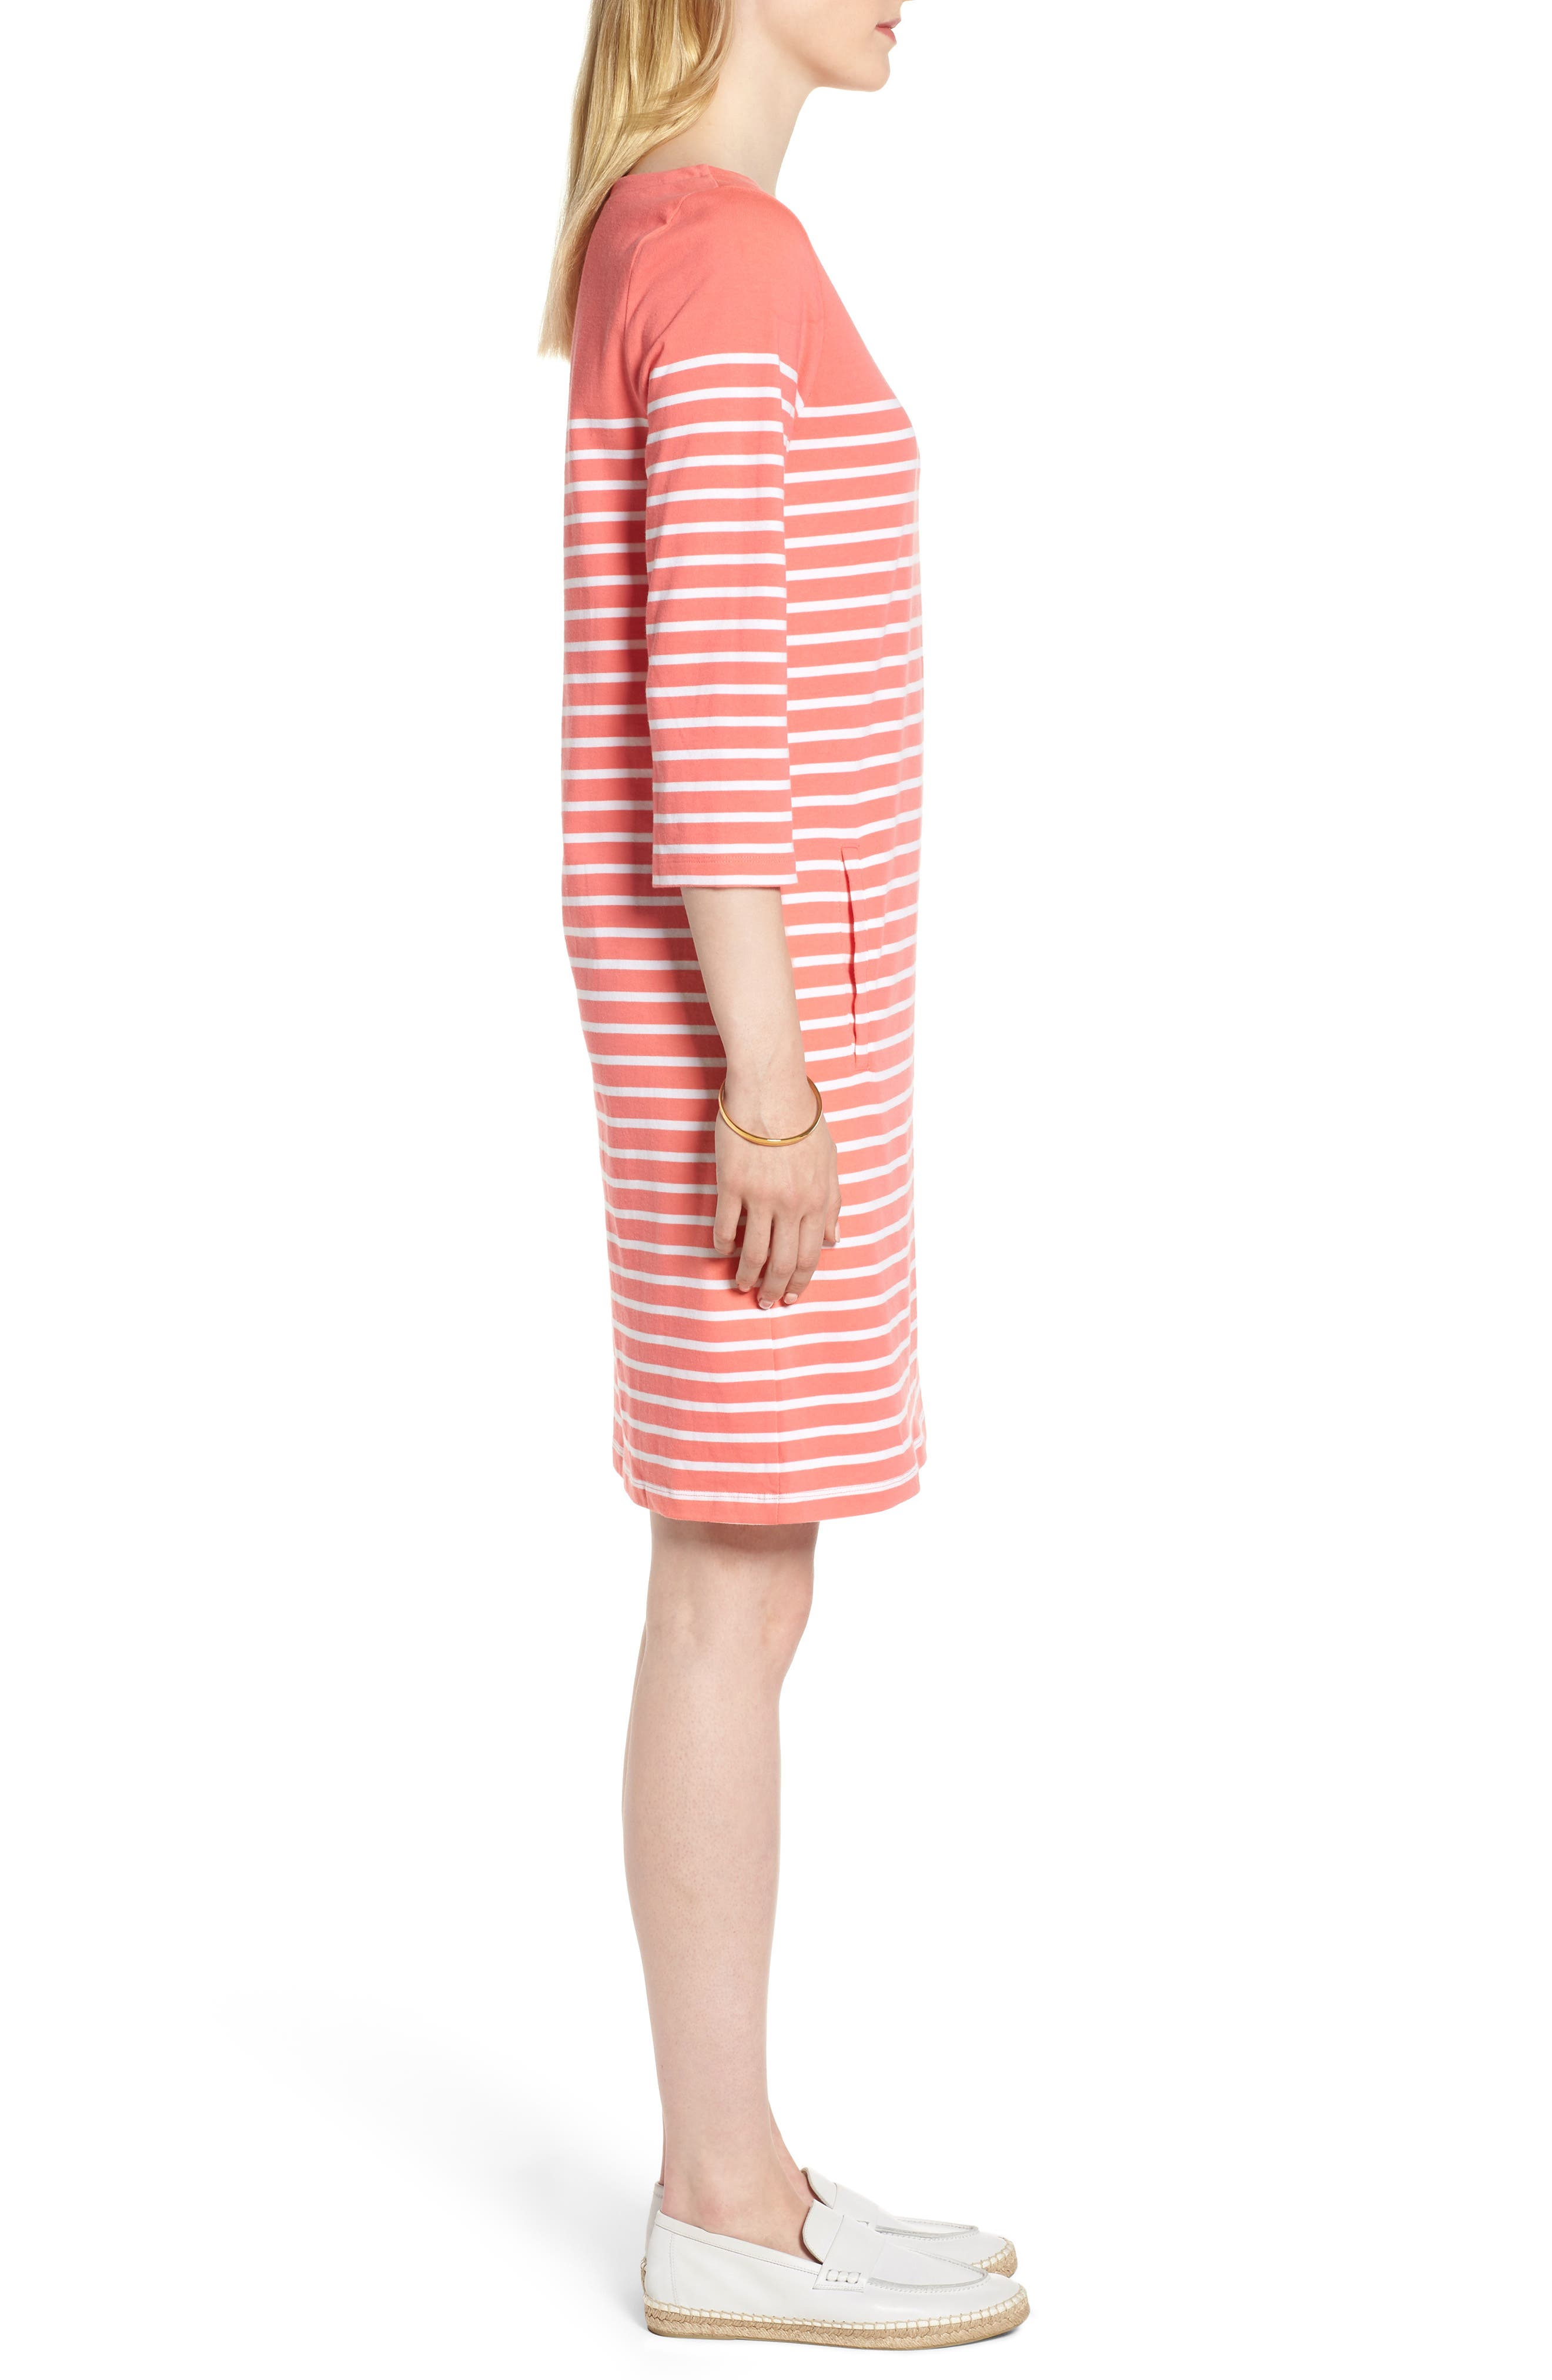 Stripe Cotton Knit Shift Dress,                             Alternate thumbnail 3, color,                             Coral- White Stripe